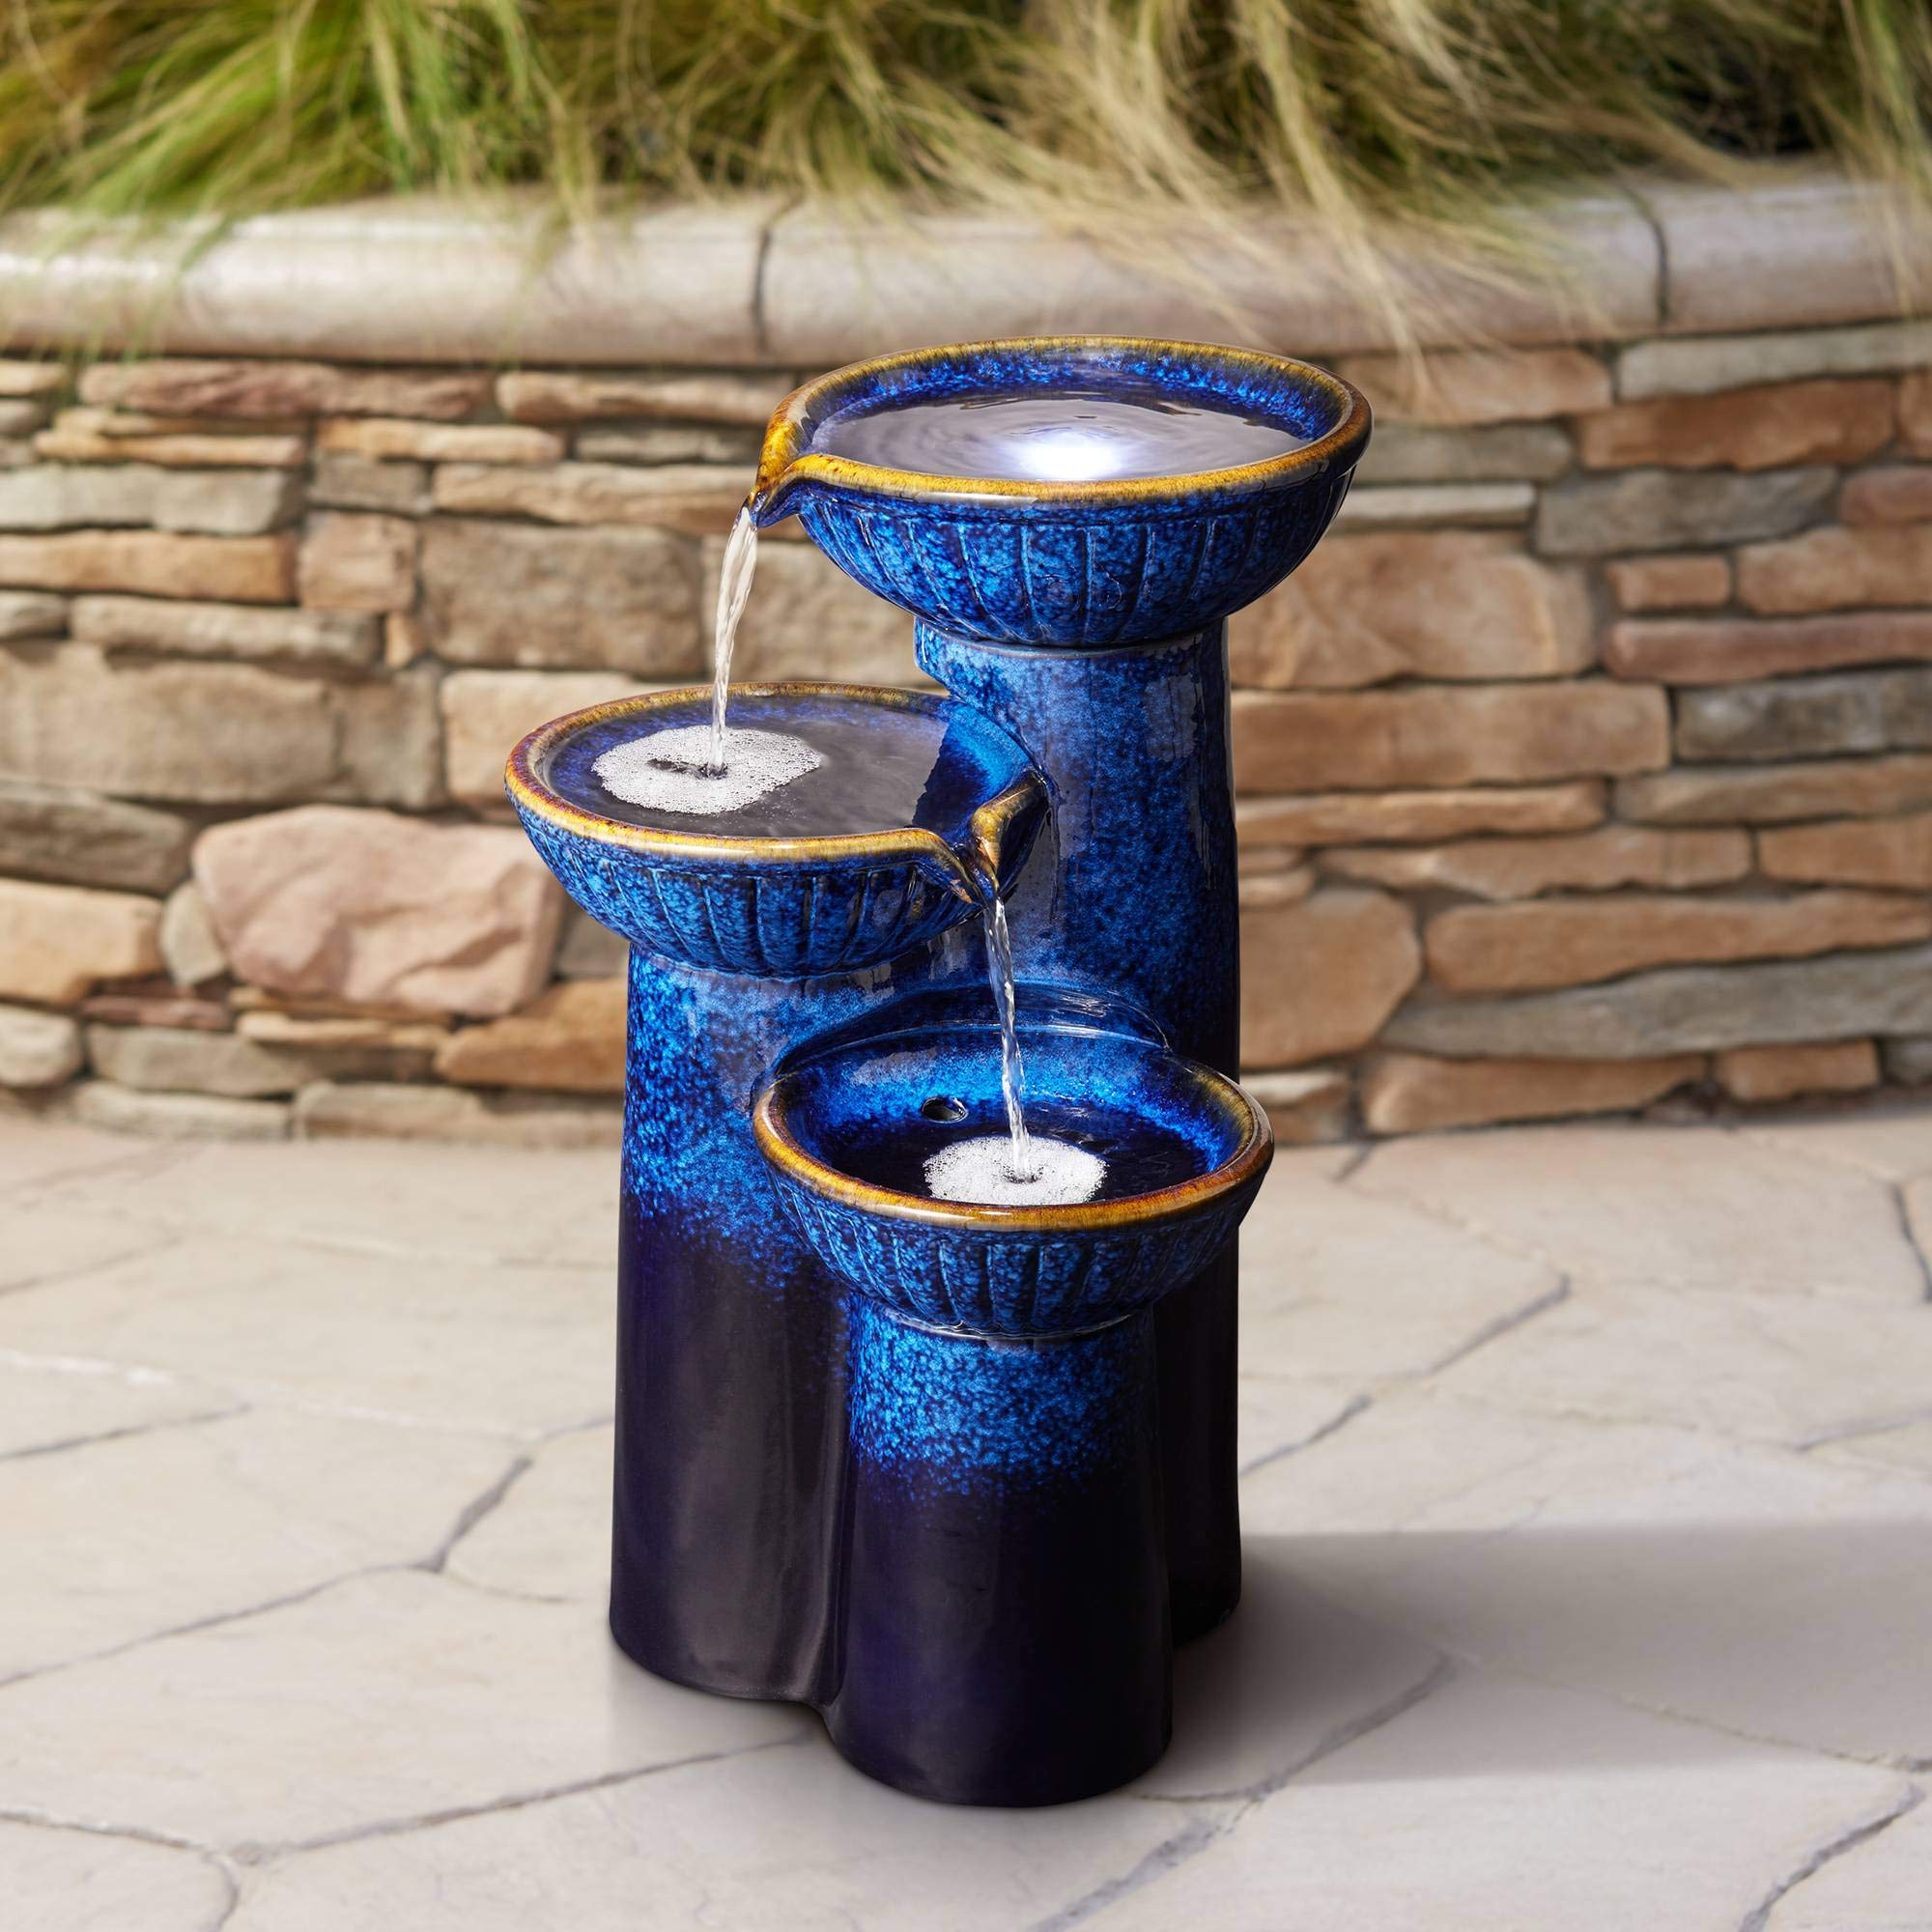 3 Bowl Modern Outdoor Floor Water Fountain with Light LED